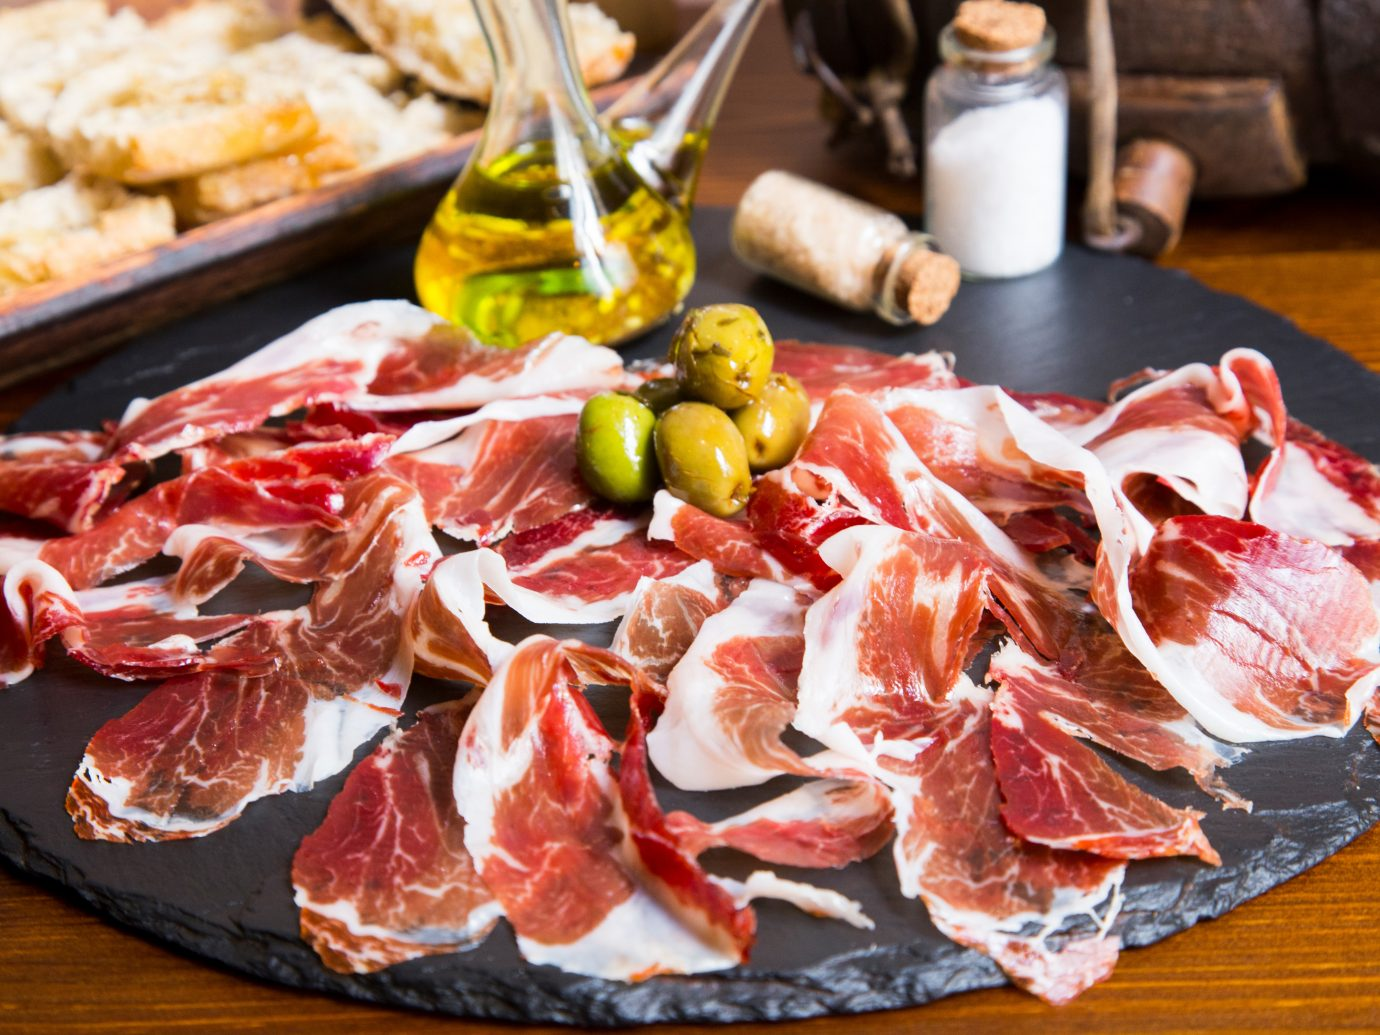 The Dish: Jamón Ibérico and Pan con Tomate at Bodega 1900 in Barcelona, Spain